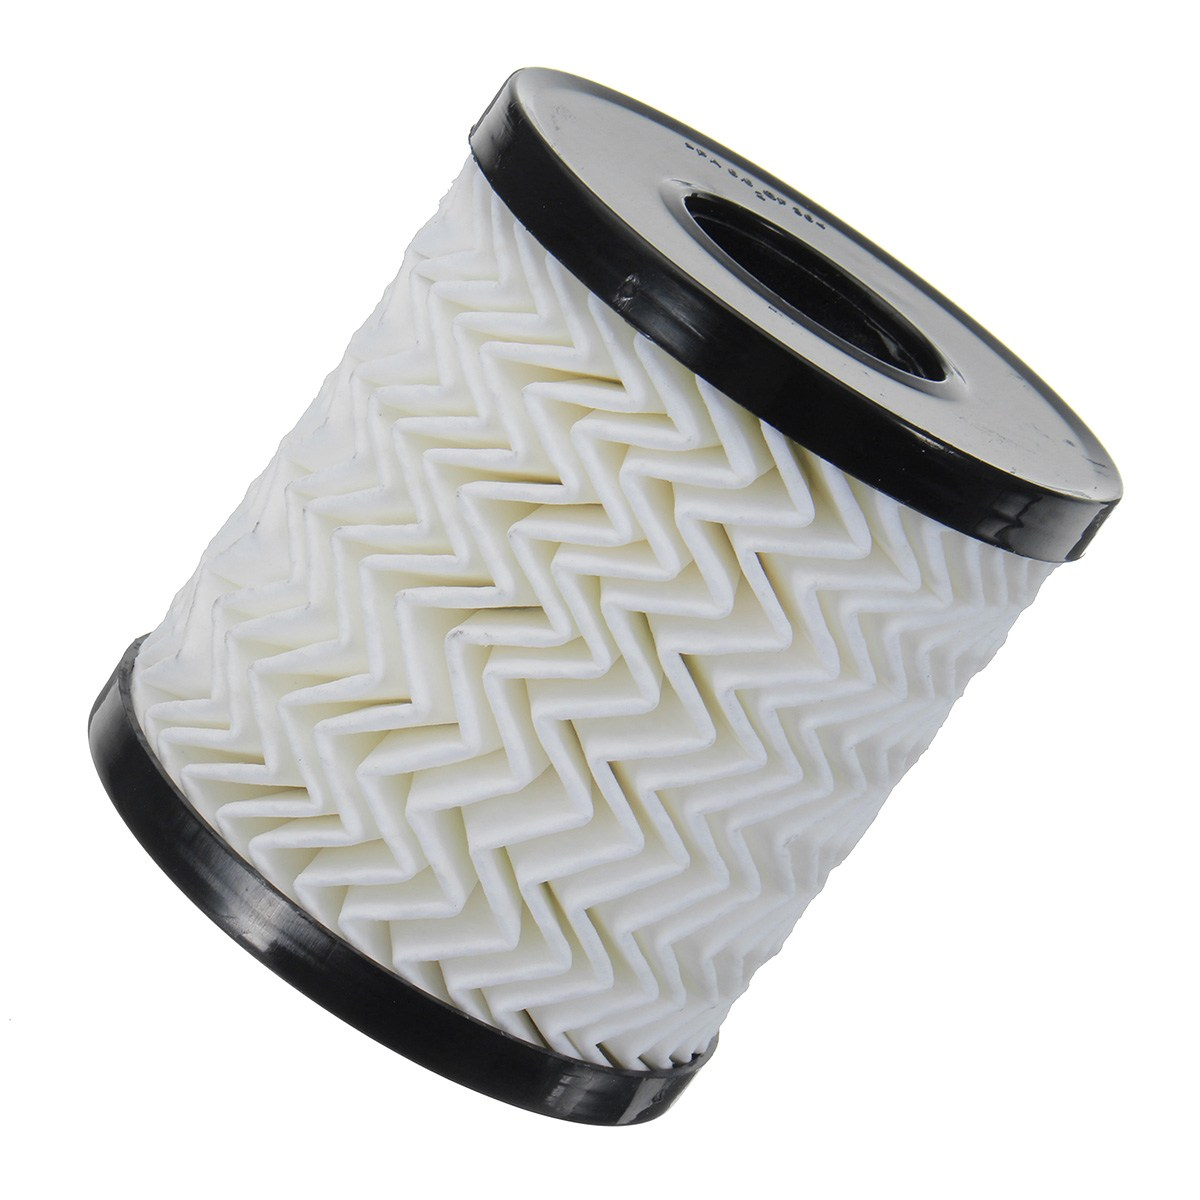 Car Oil Filter For Peugeot 307 206 / 207 / 408 / 508 For Citroen Elysee Picasso C2 C5 1109.3X Car Accessories